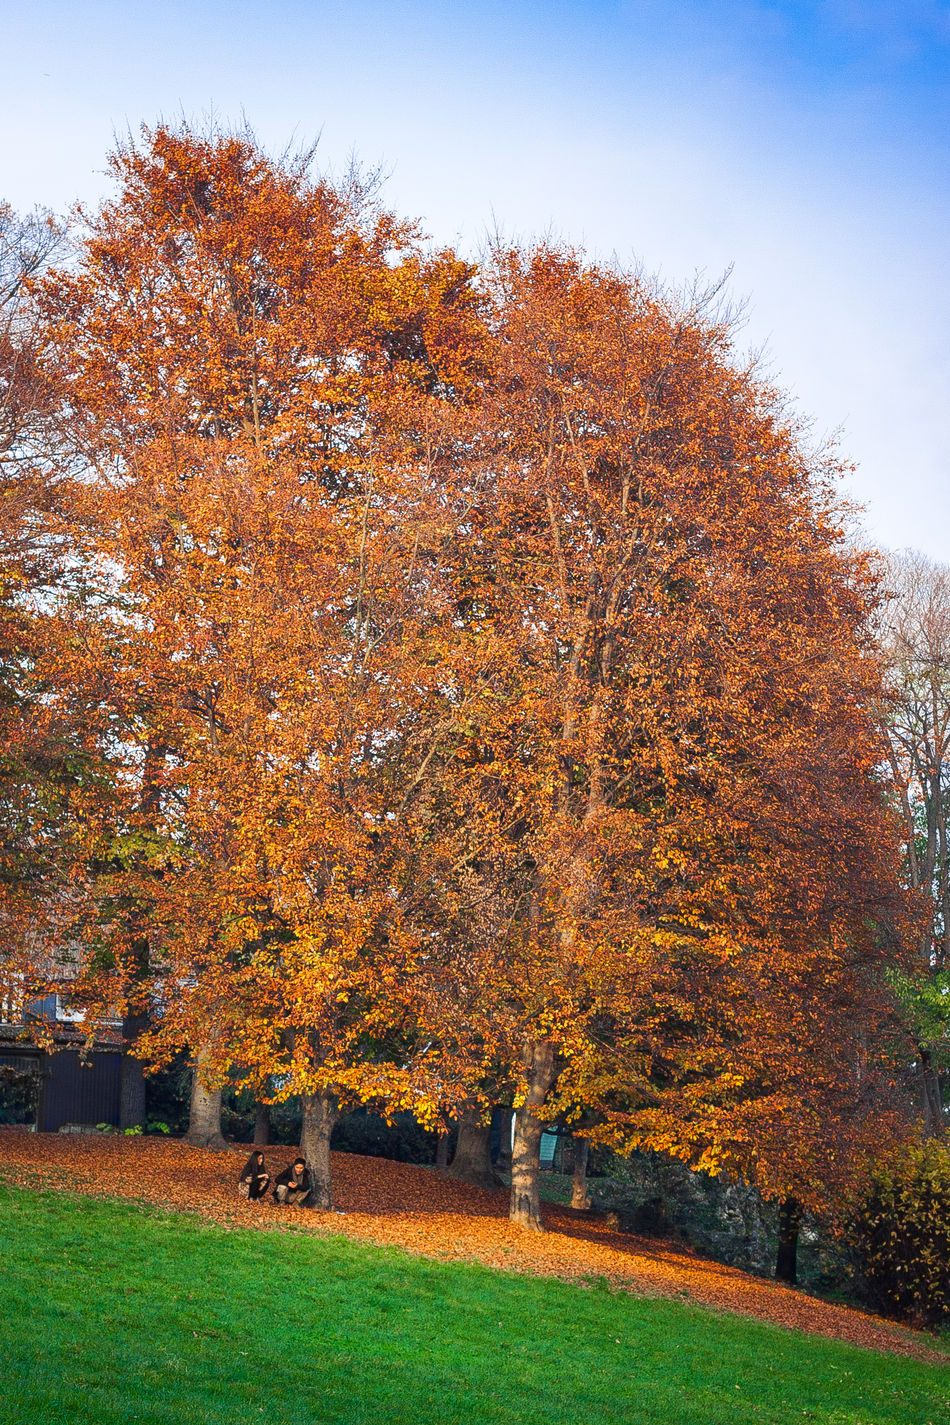 I due, quei due, davvero | Il Valentino Autumn Autunno  Beauty In Nature Day Fall Growing Love Love Tree Nature Outdoors Parco Del Valentino Parcovalentino Park Season  The Way Forward Torino Tranquility Tree Tree Trunk Turin Turin Italy